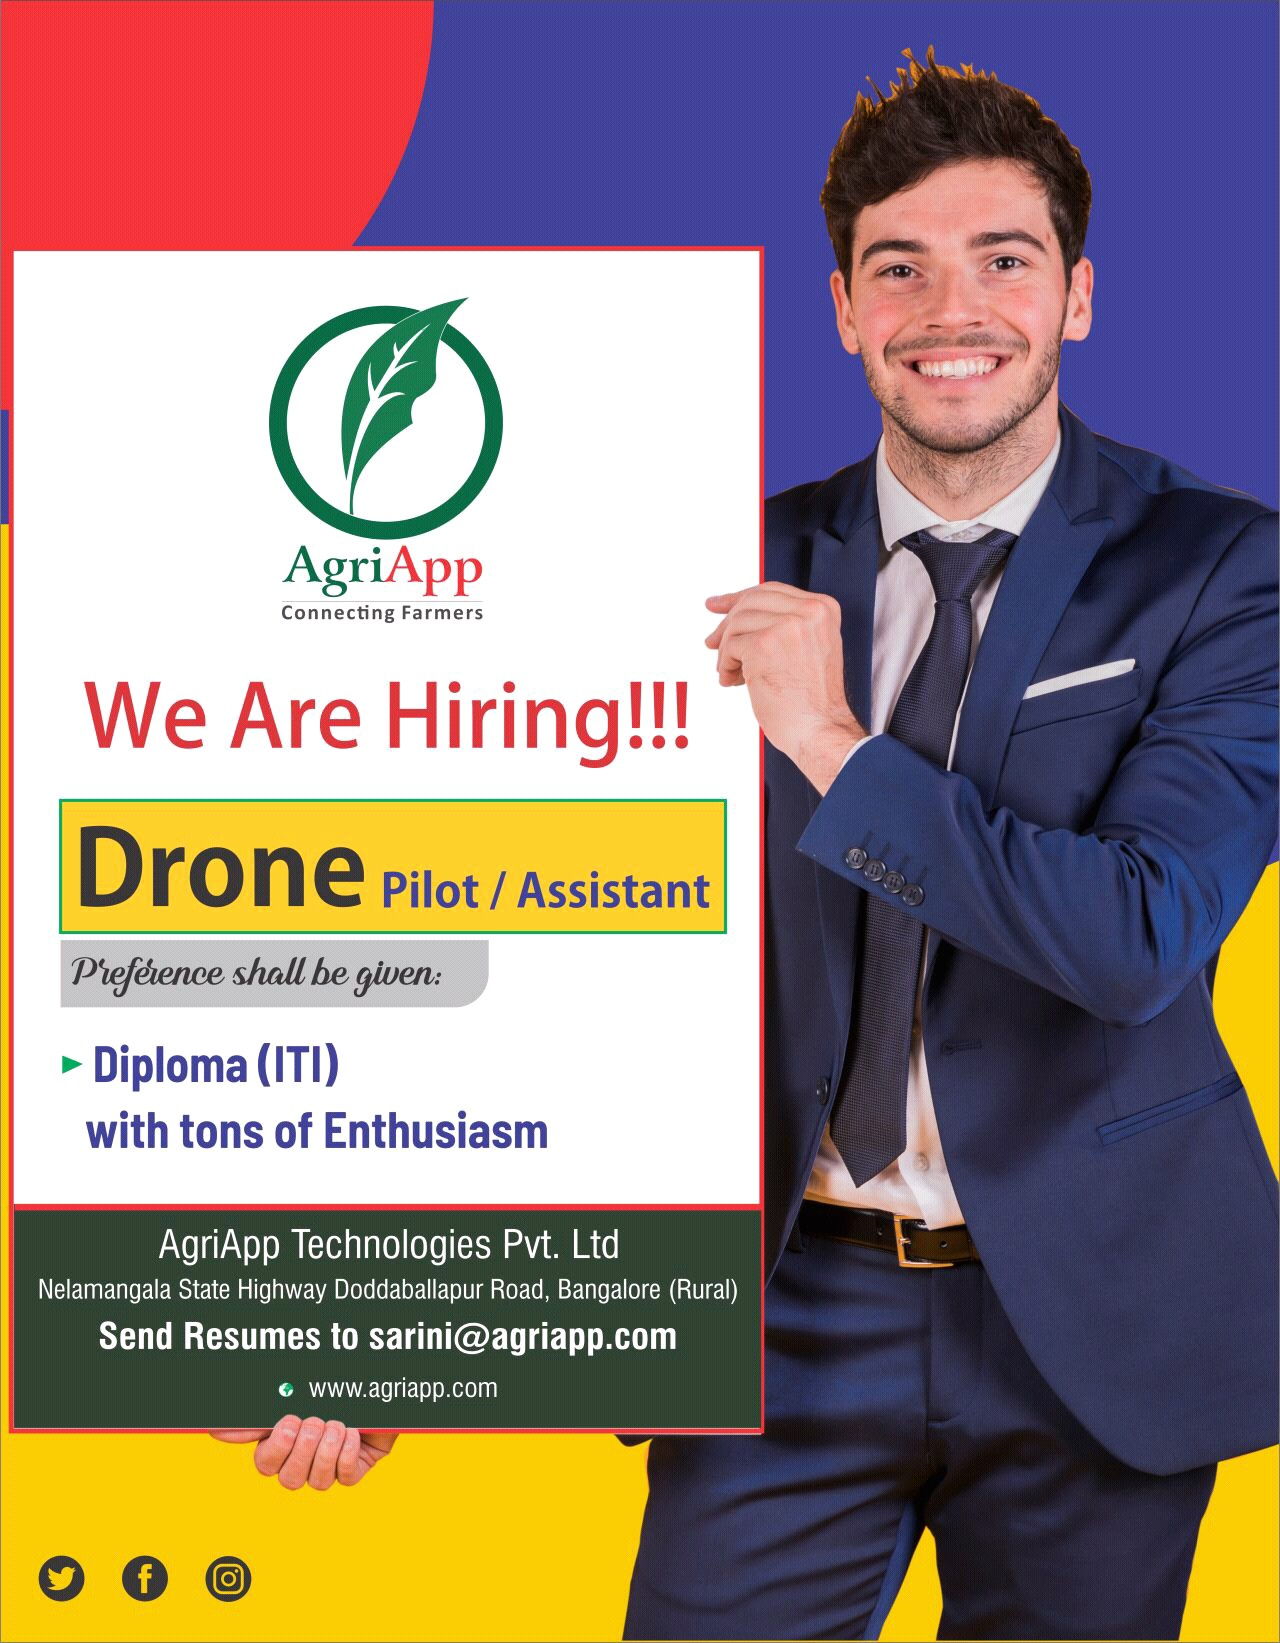 AgriApp Technologies Pvt. Ltd ITI and Diploma Background Candidates For Position  Drone Pilot & Assistant